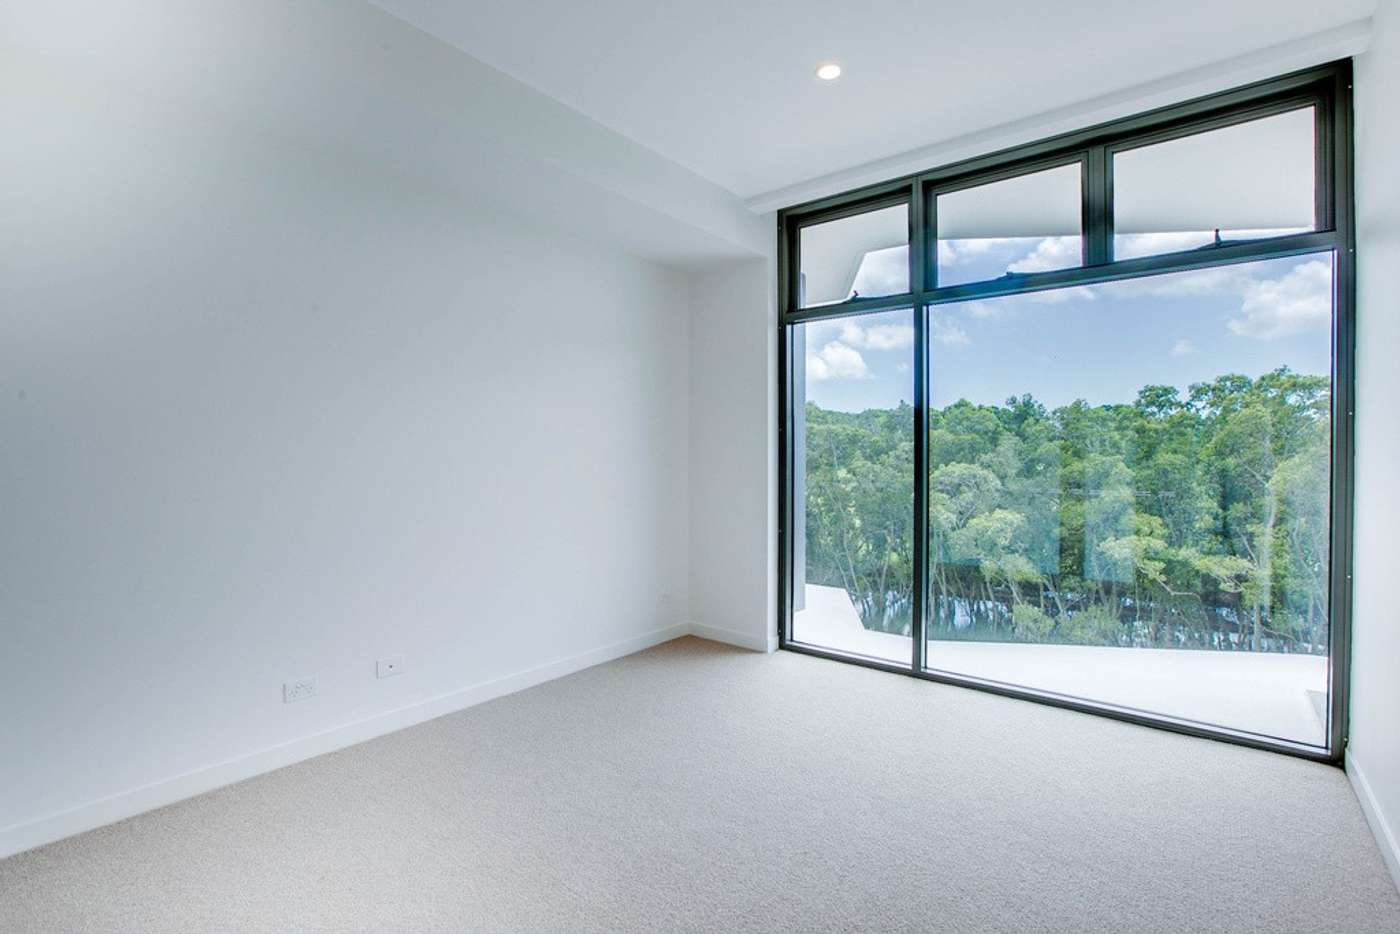 Fifth view of Homely apartment listing, 4311/18 Parkside, Hamilton QLD 4007